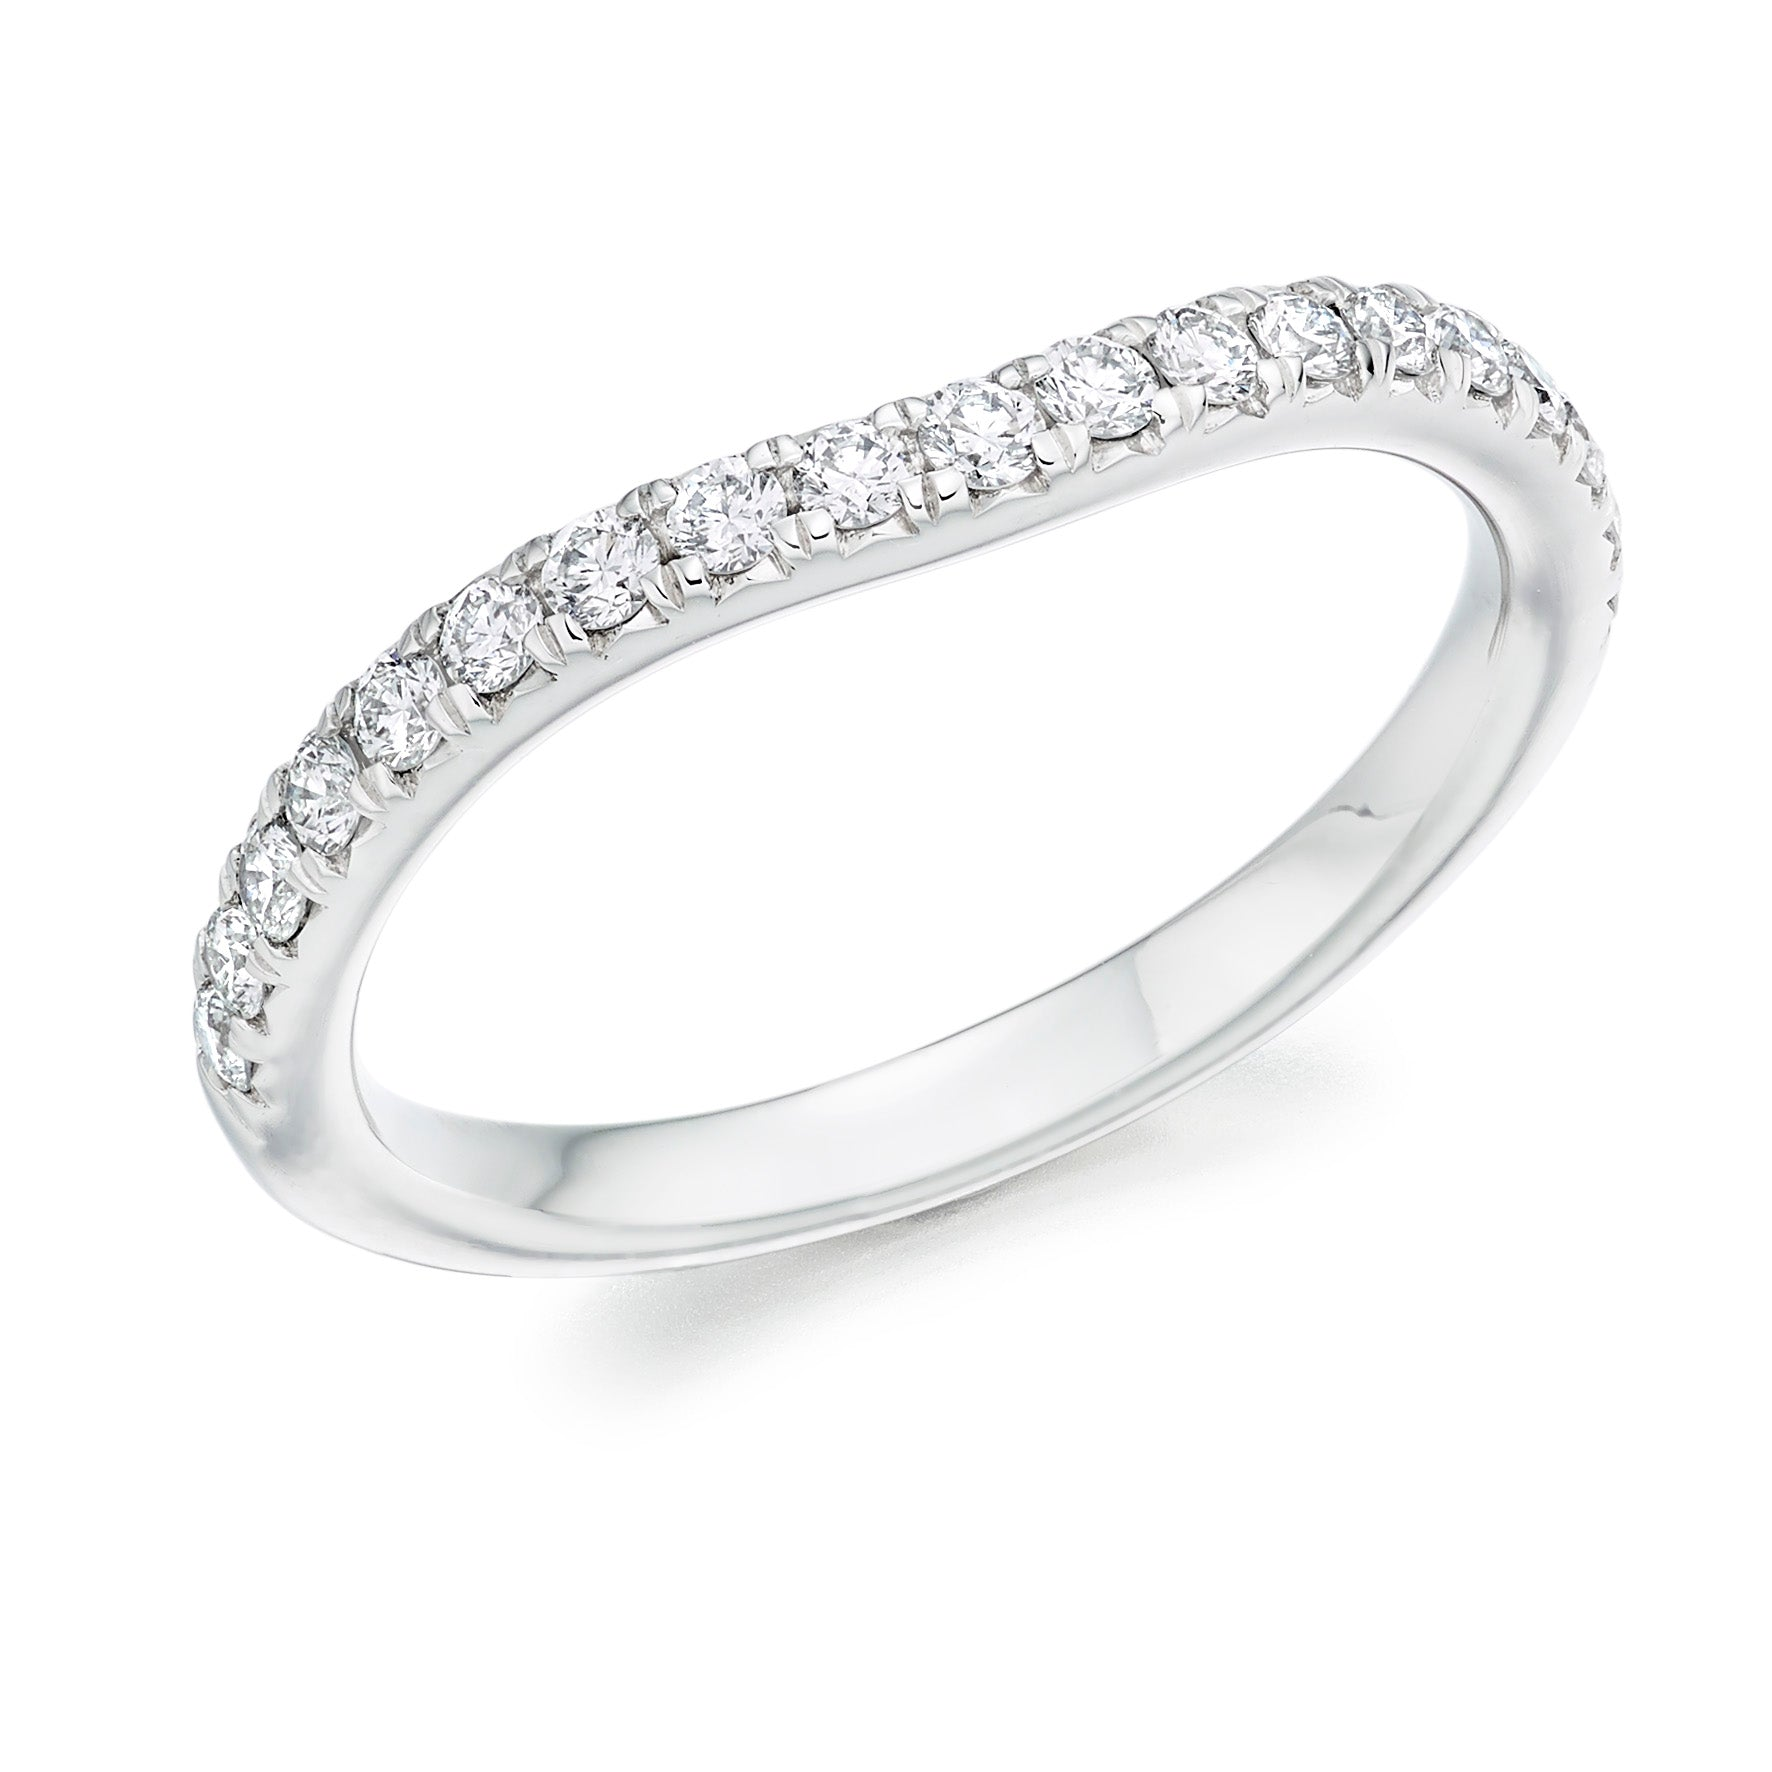 Platinum 0.35ct Round Brilliant Cut Diamonds Curved Vintage Wedding Ring